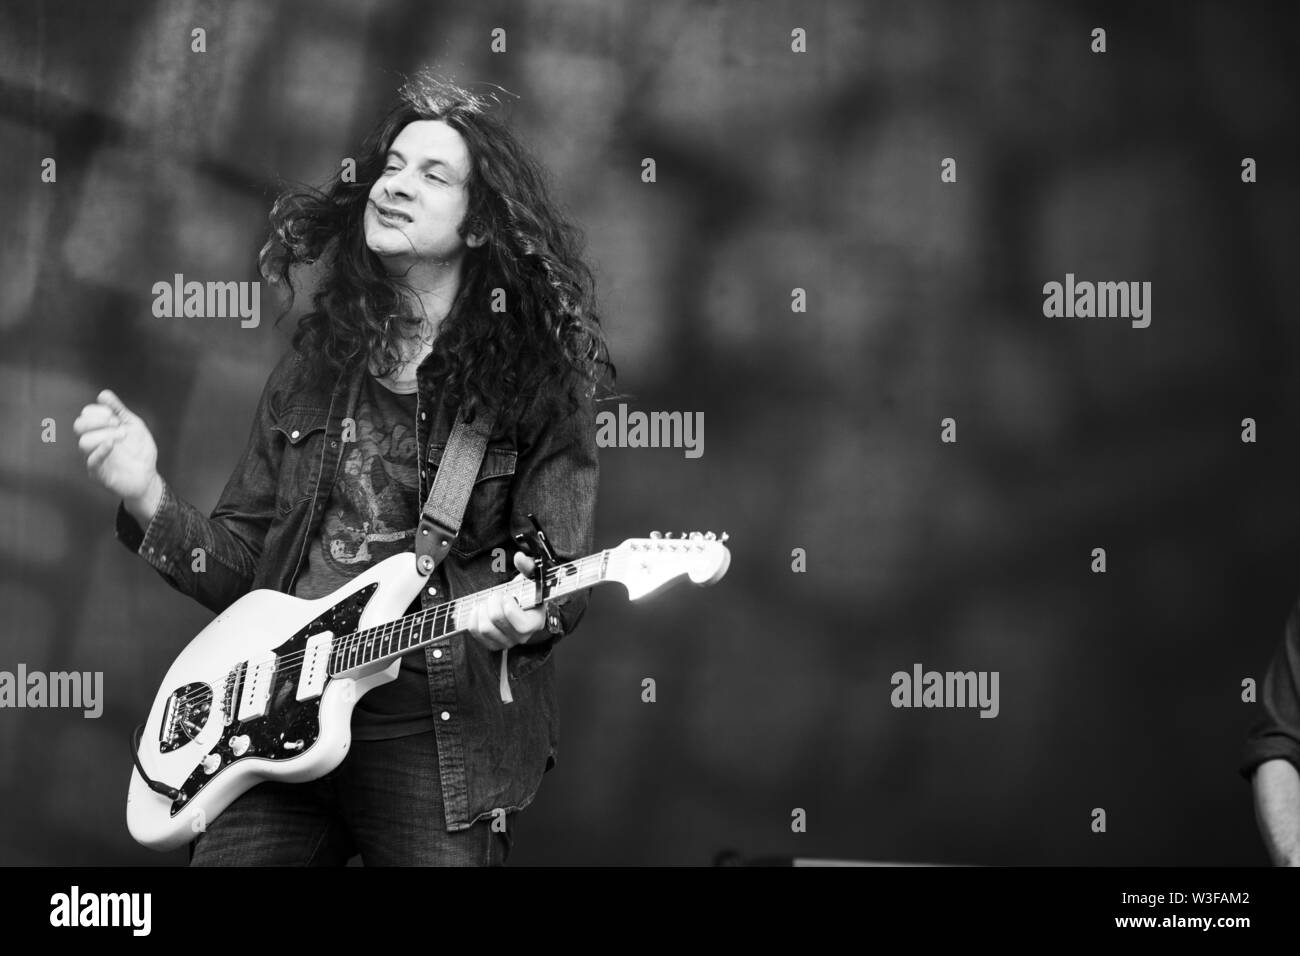 Bergen, Norway - June 15th, 2019. Kurt Vile and The Violators perform a live concert during the Norwegian music festival Bergenfest 2019 in Bergen. Here singer, songwriter and musician Kurt Vile is seen live on stage. (Photo credit: Gonzales Photo - Jarle H. Moe). - Stock Image